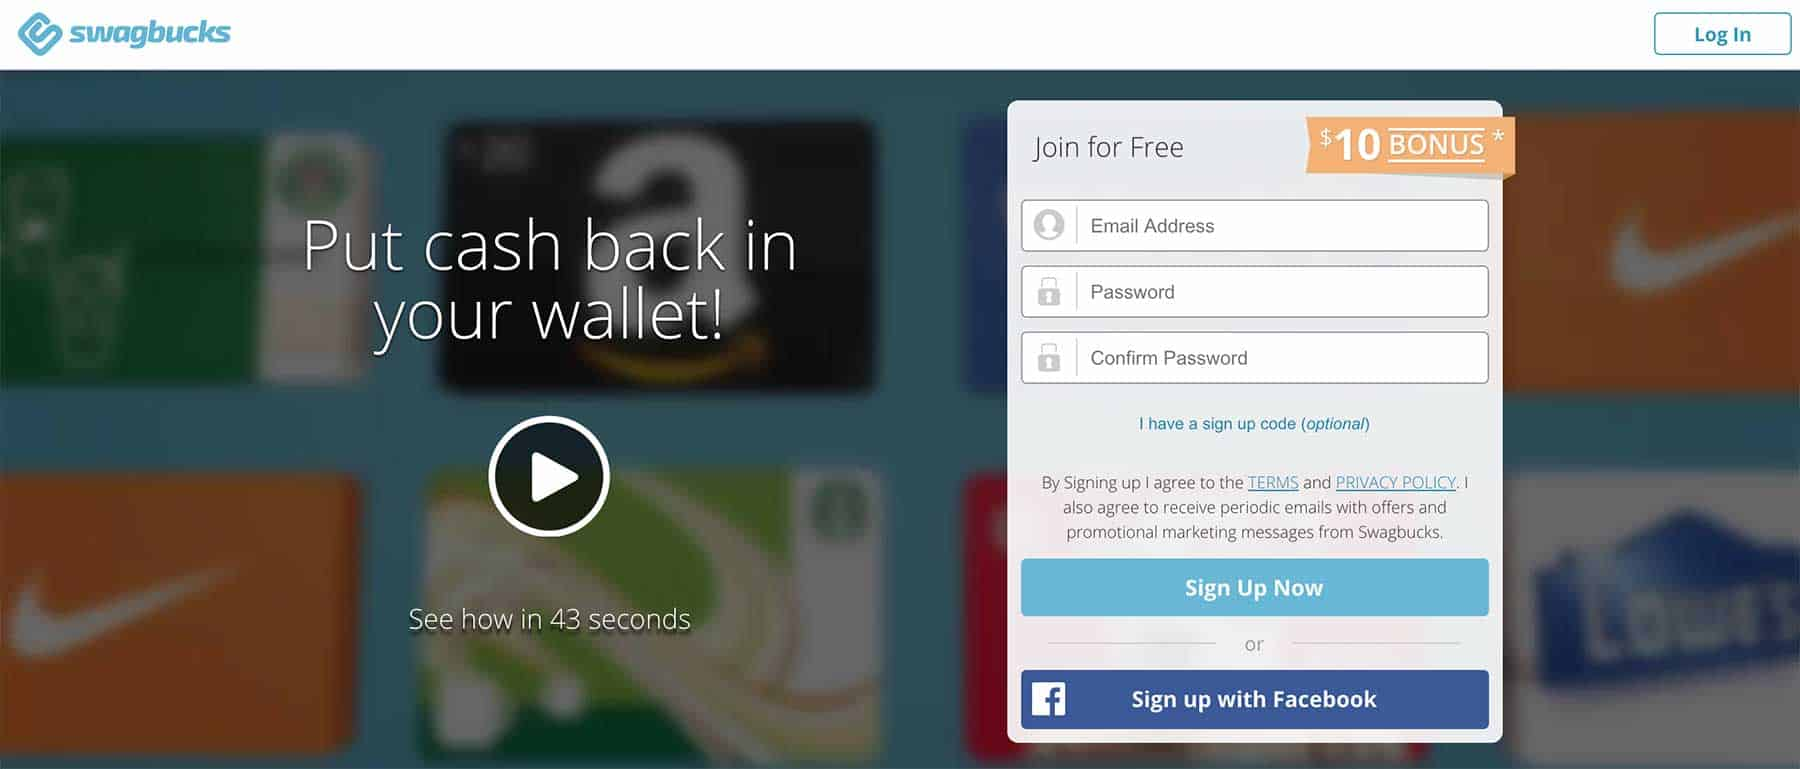 Get Paid to Advertise with Apps